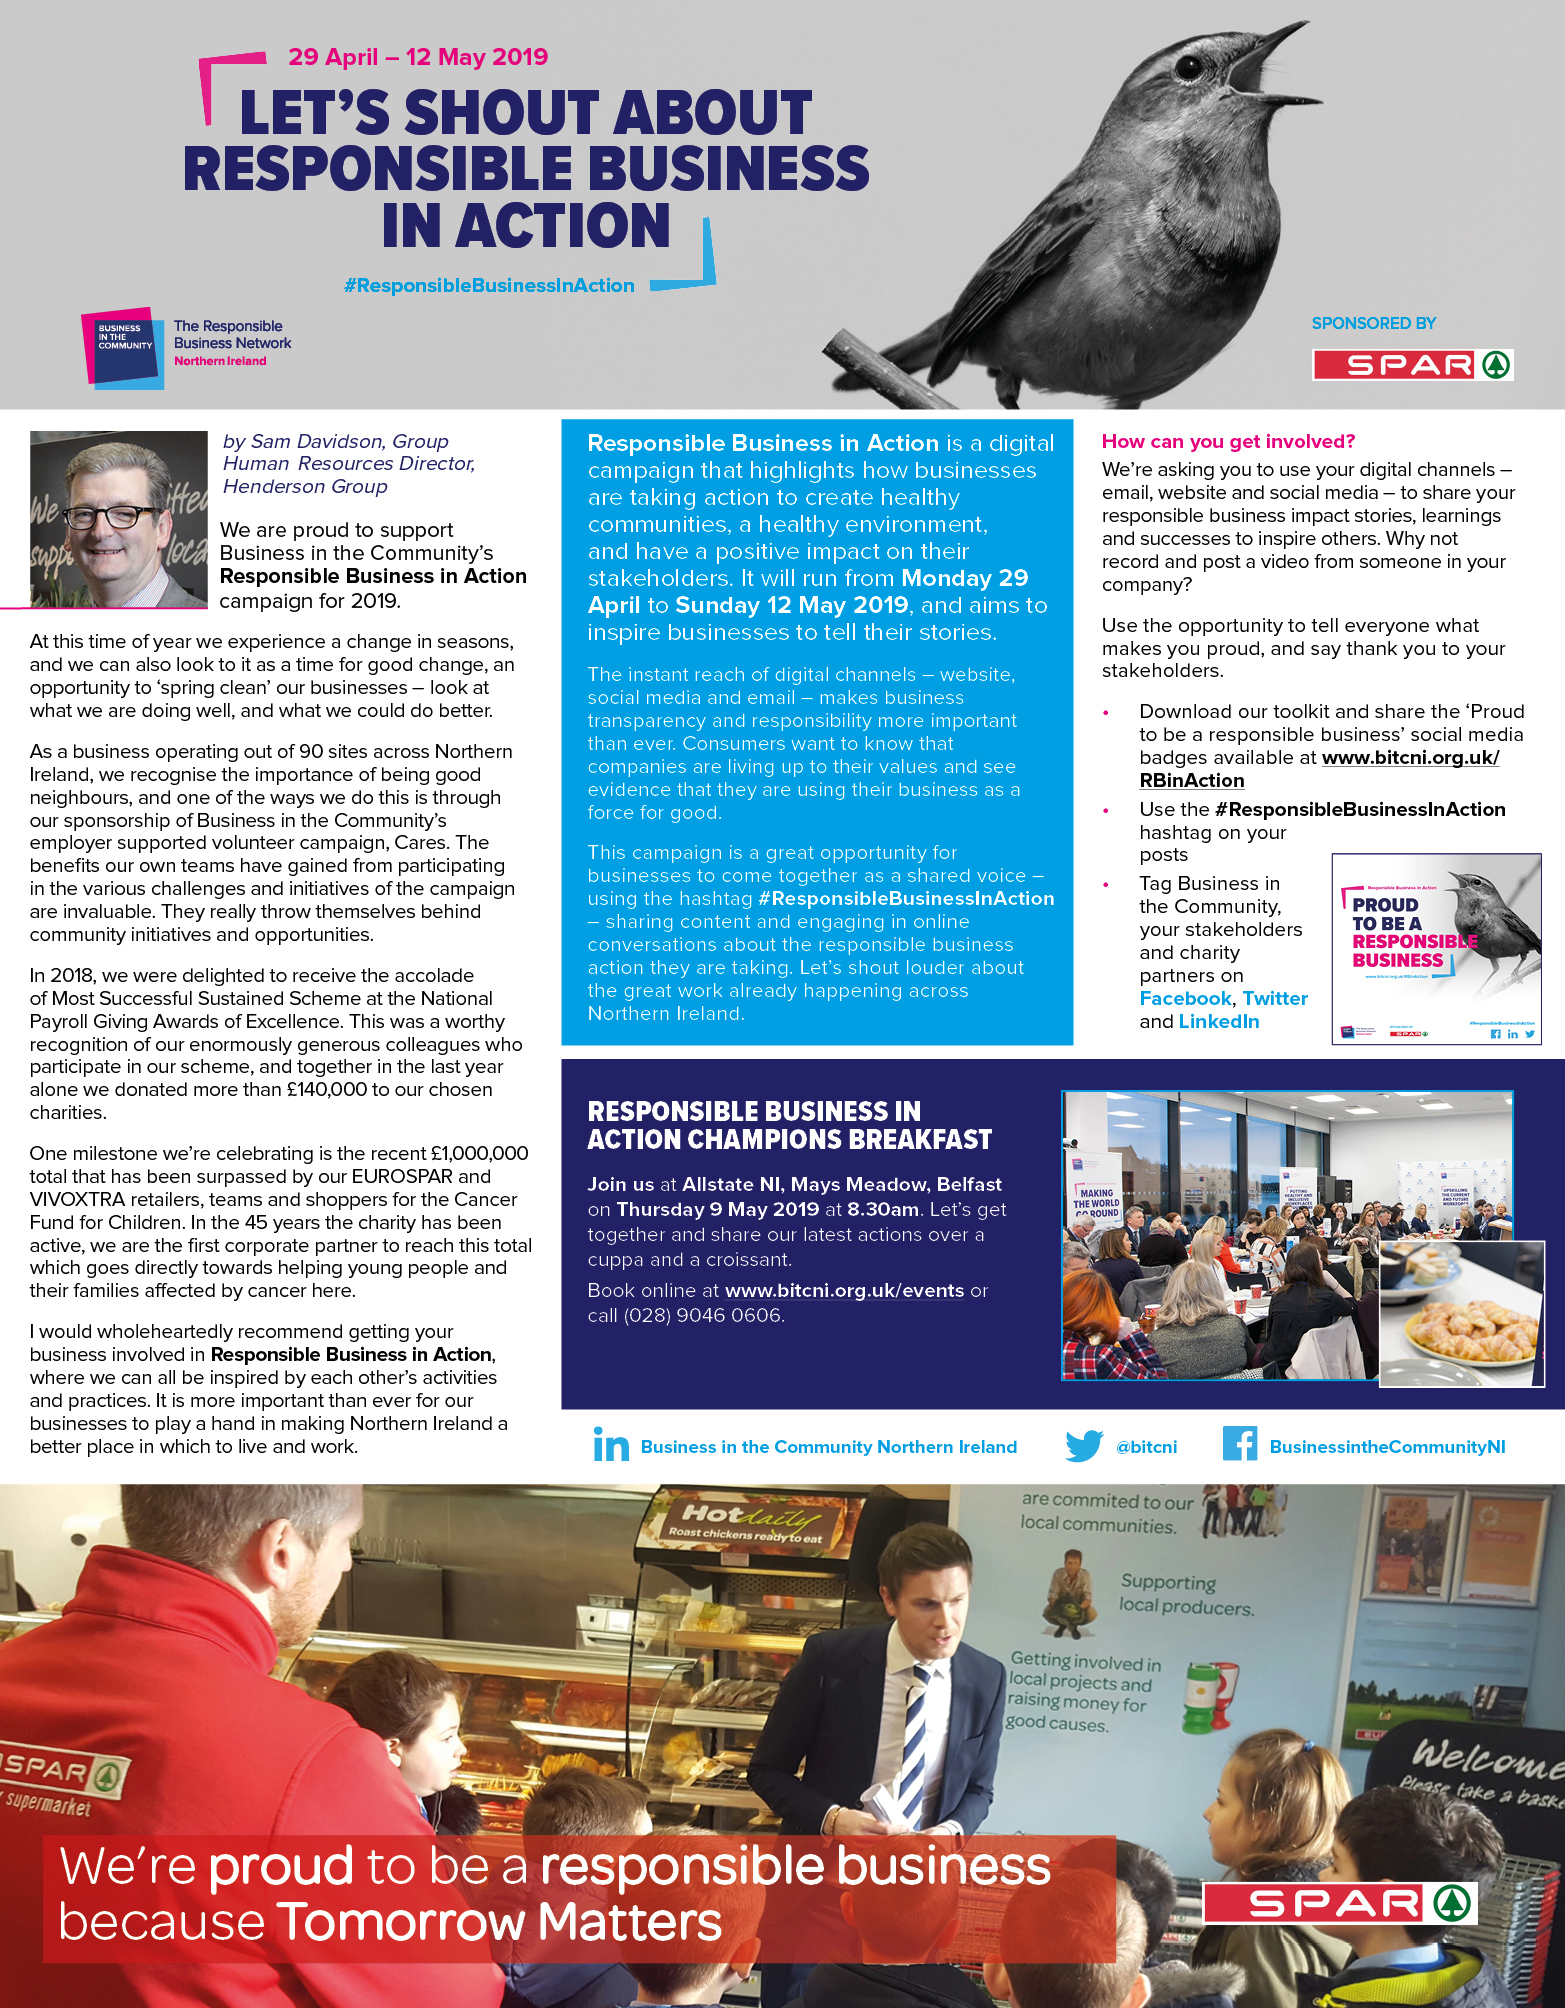 190405_Responsible Business In Action_Irish News 2019_29 April feature